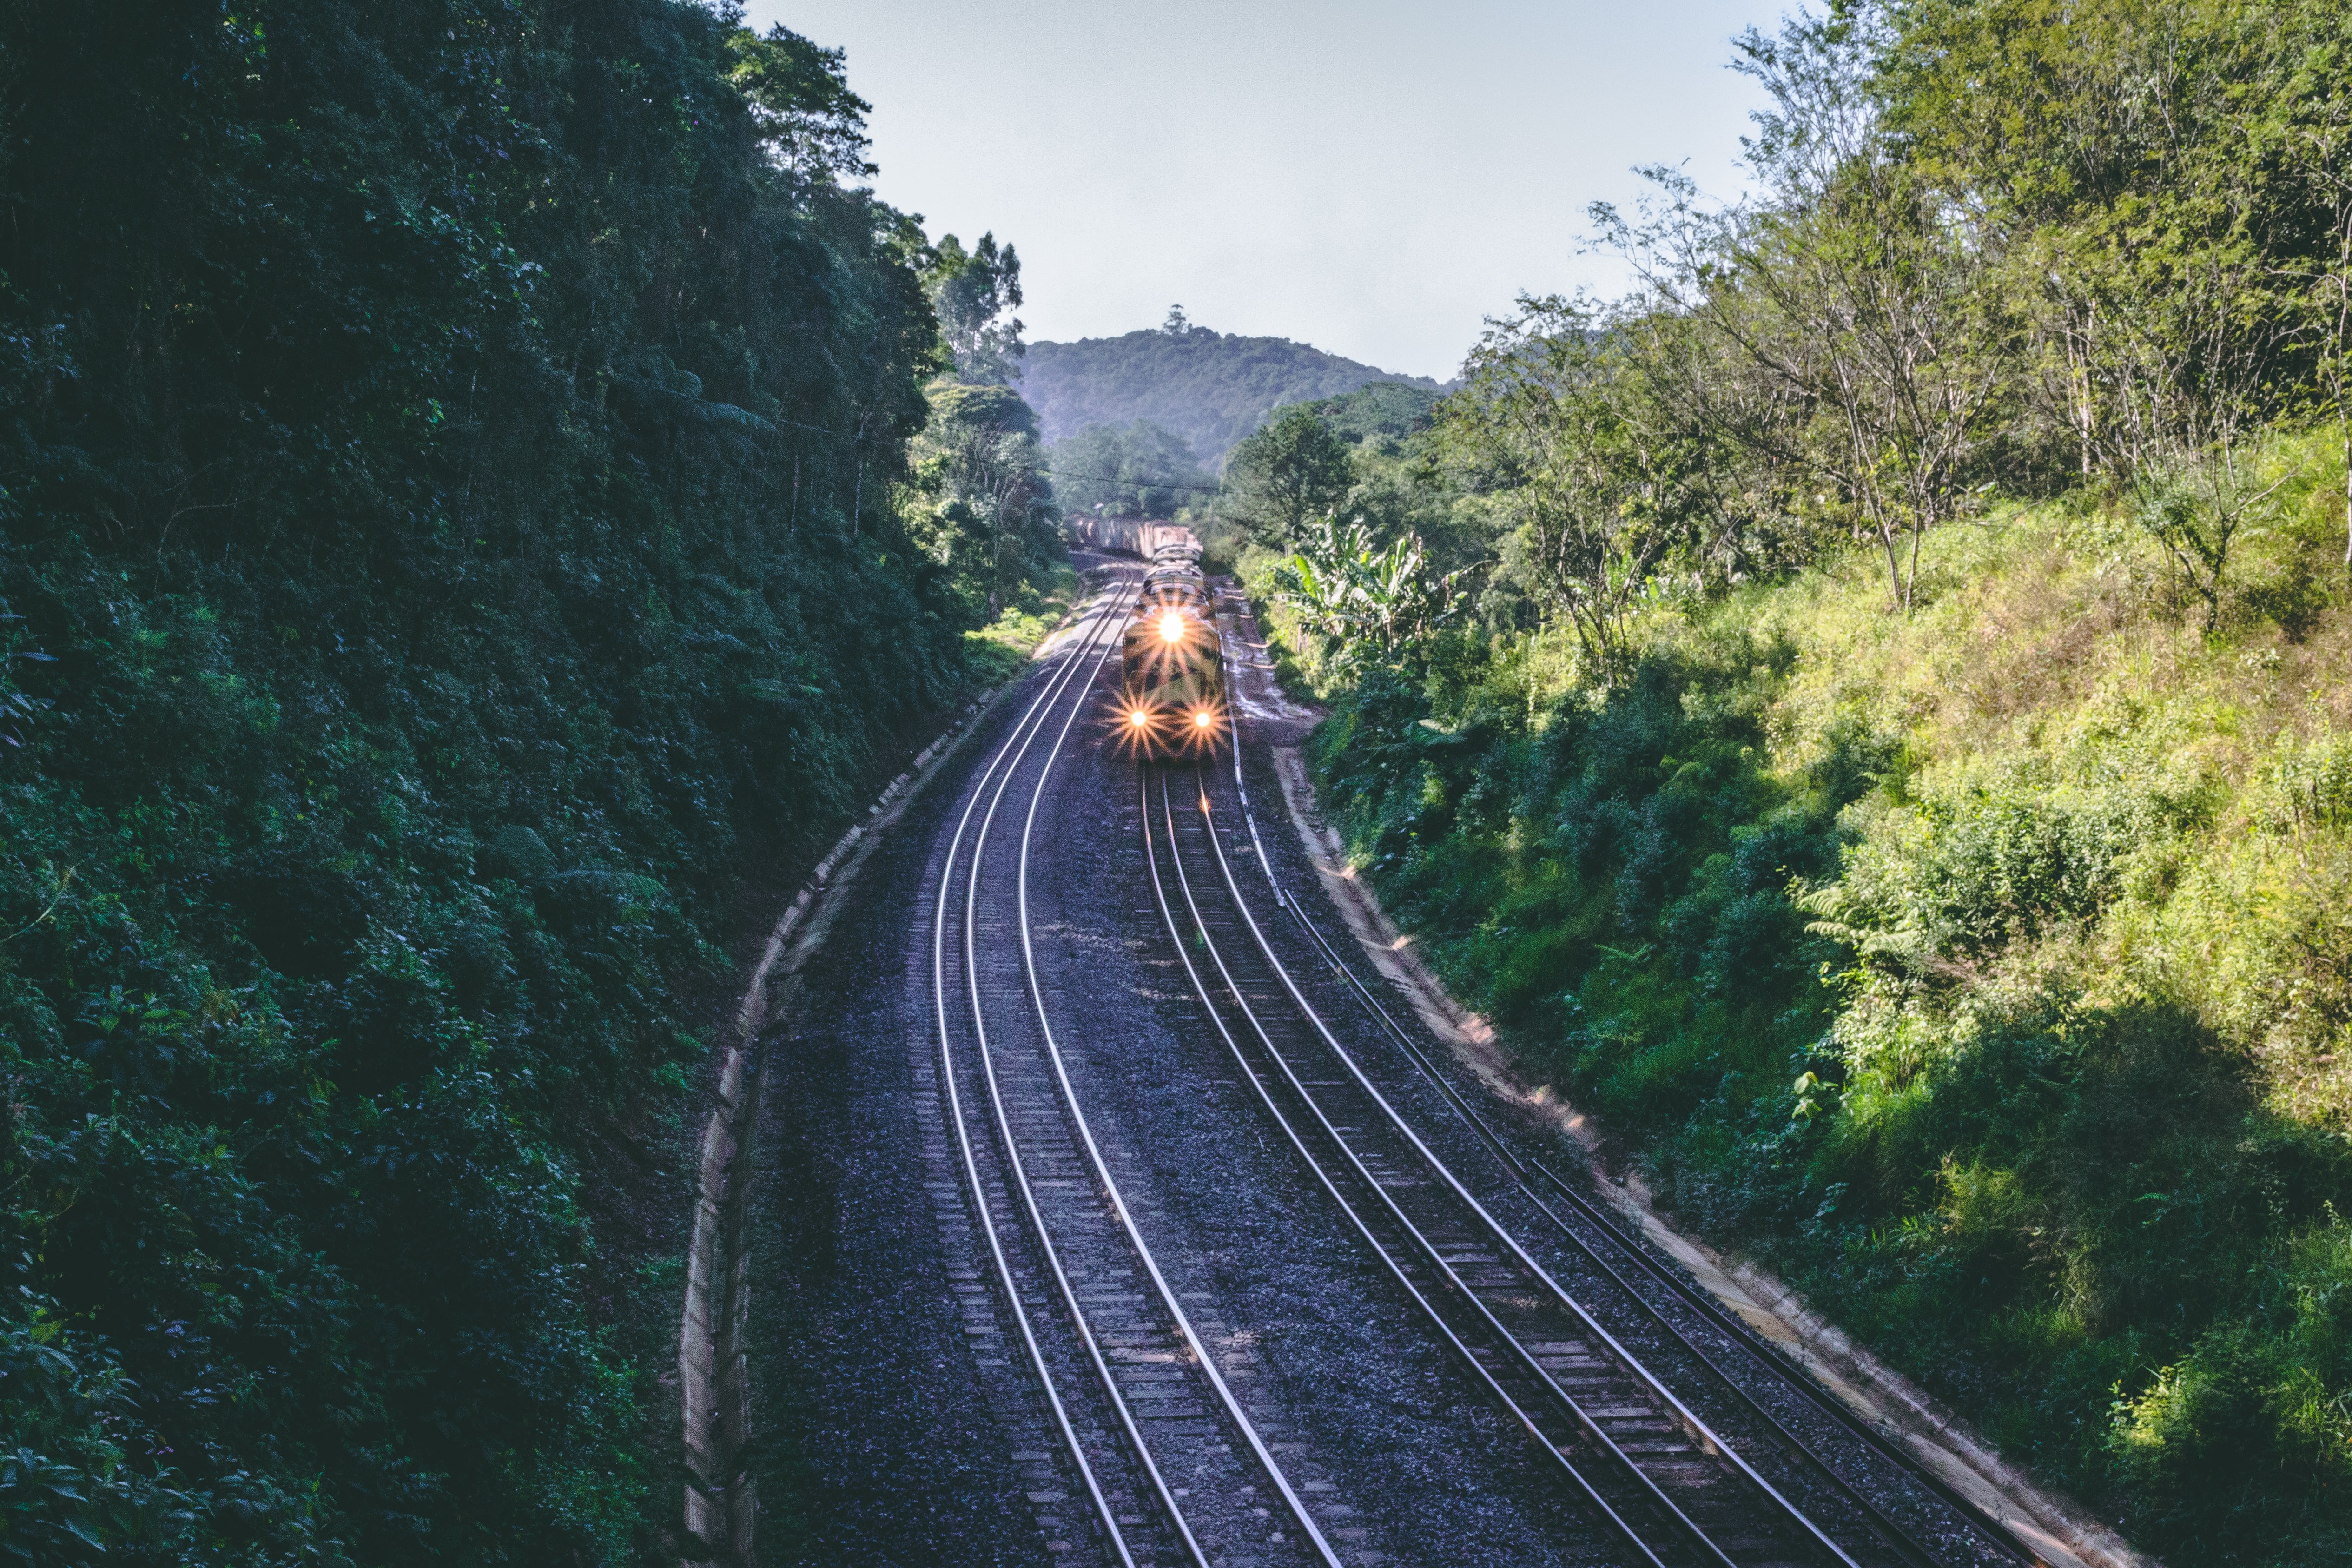 black train moving on the rail with turned-on headlights between green leafed trees at daytime